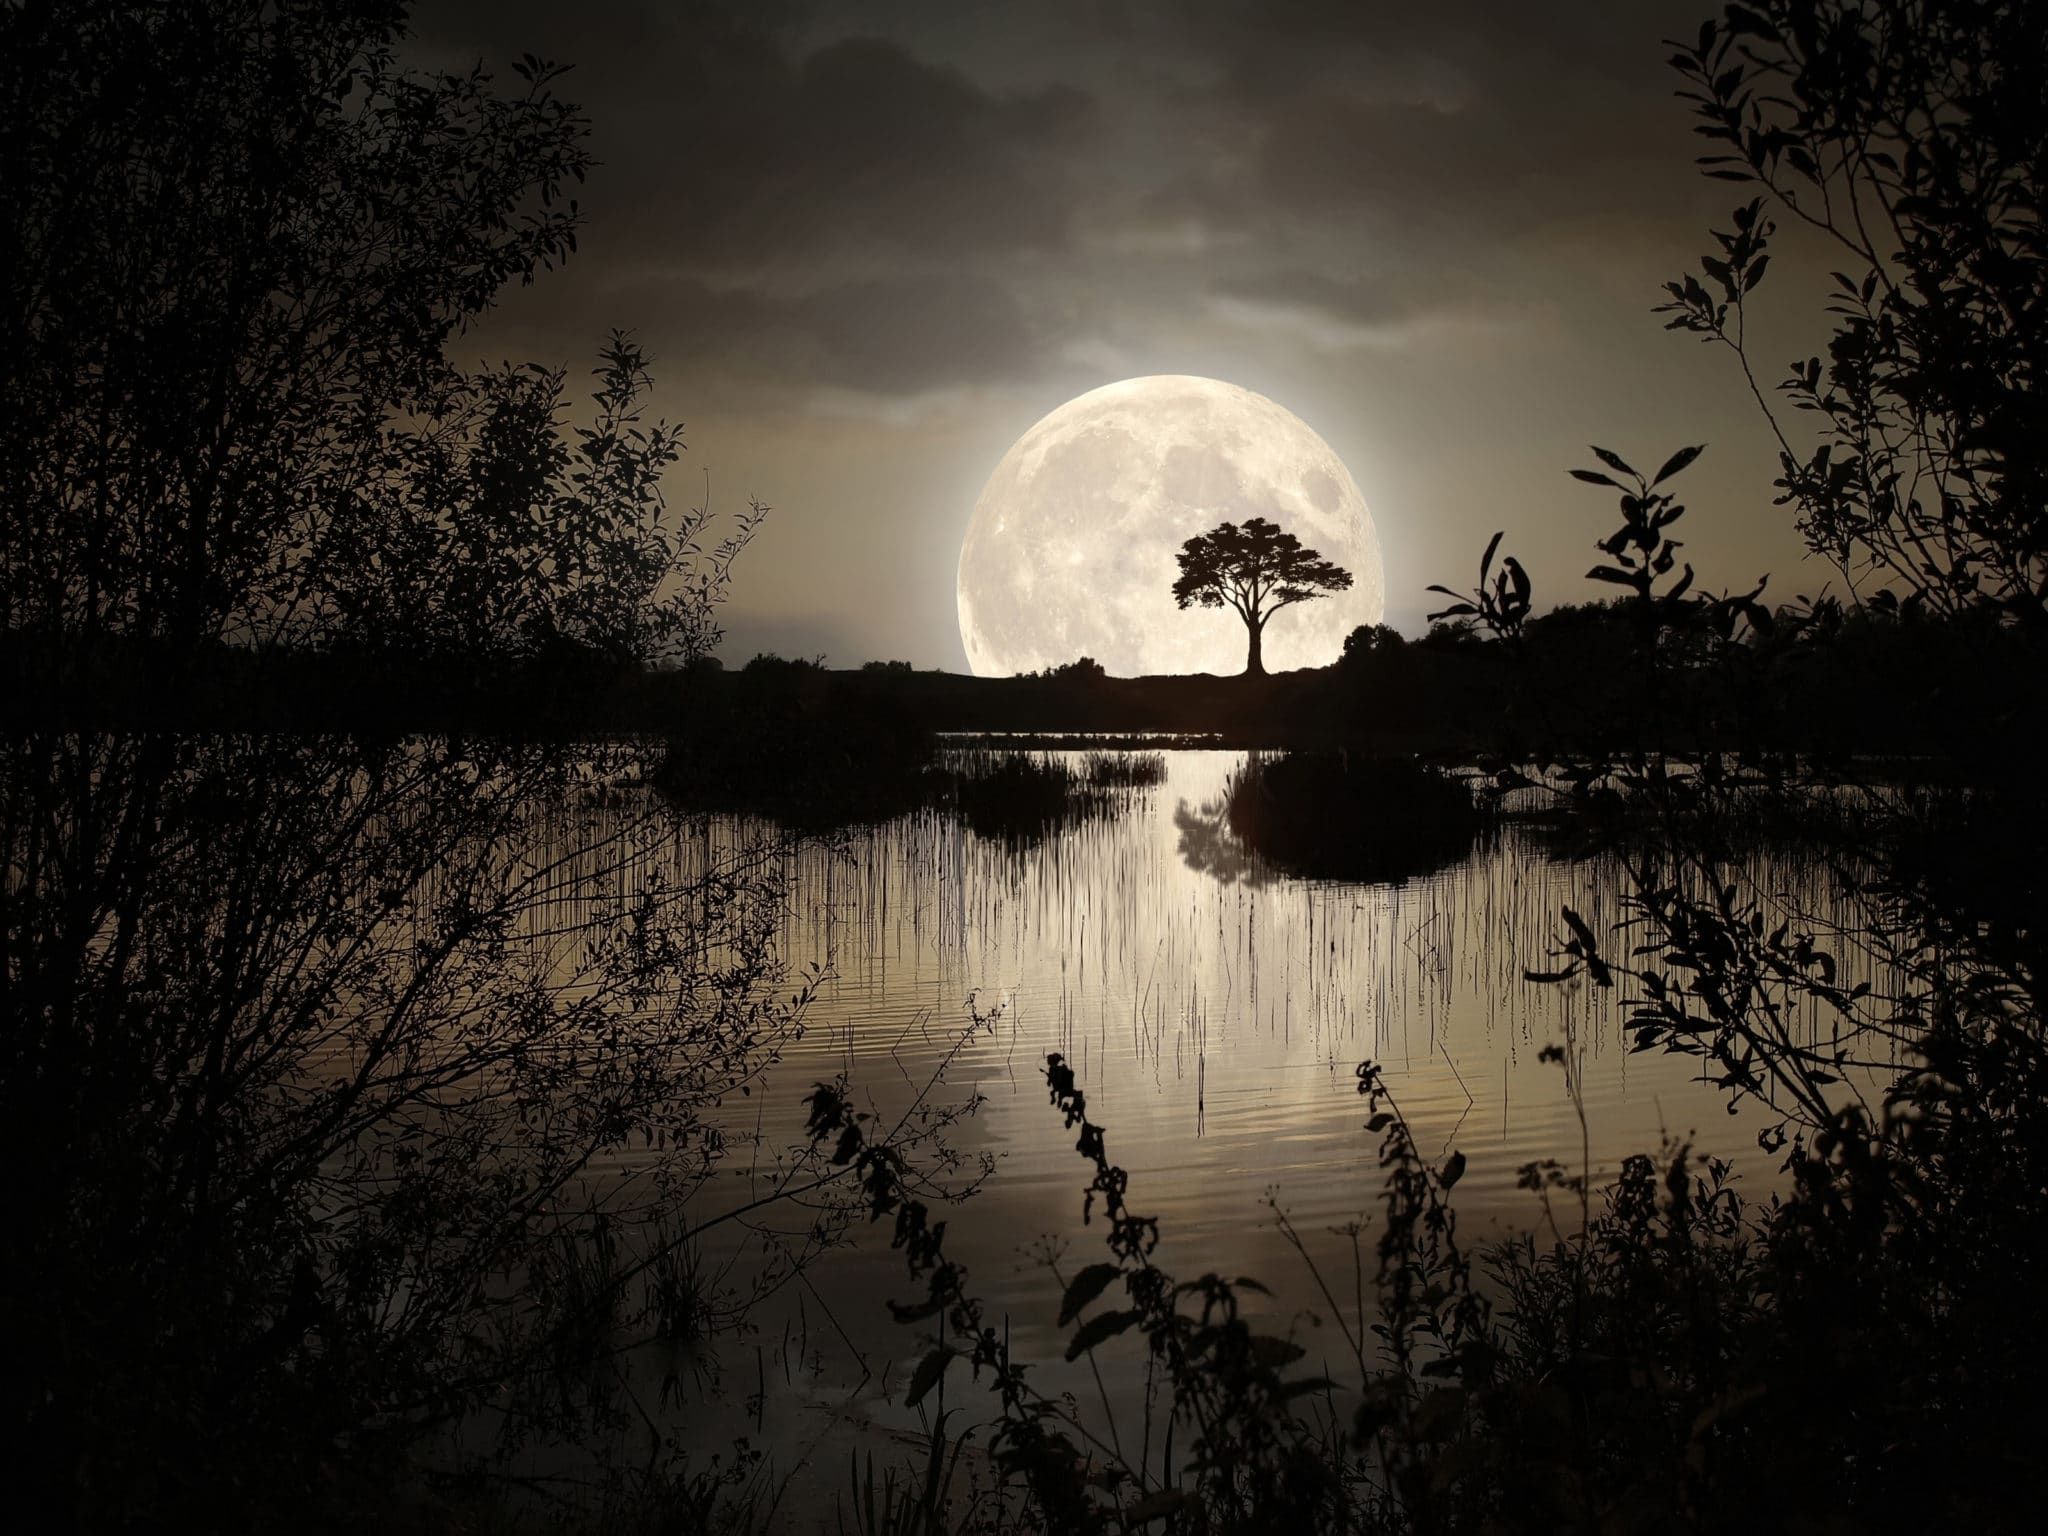 Spiritual meaning of the moon